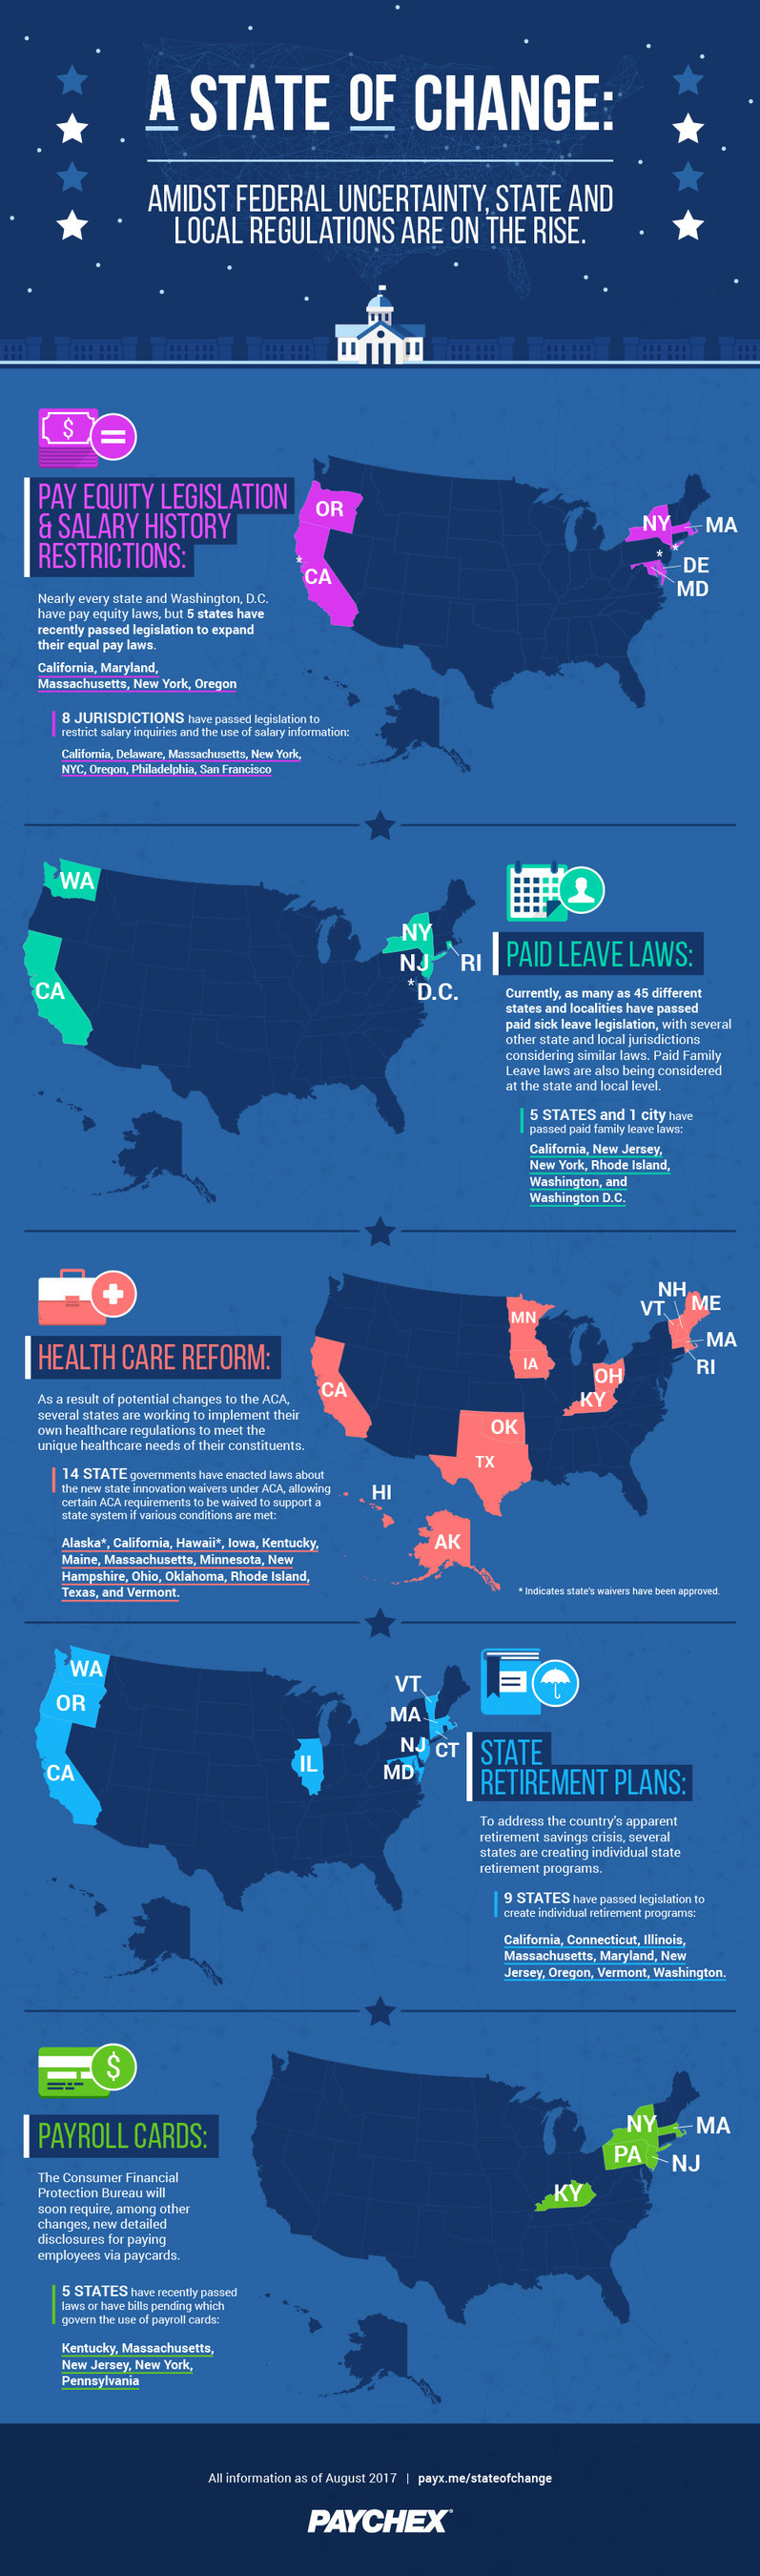 With the federal regulatory picture uncertain, many state and local governments are moving ahead with their own legislation to advance initiatives like paid leave and healthcare  in their communities.